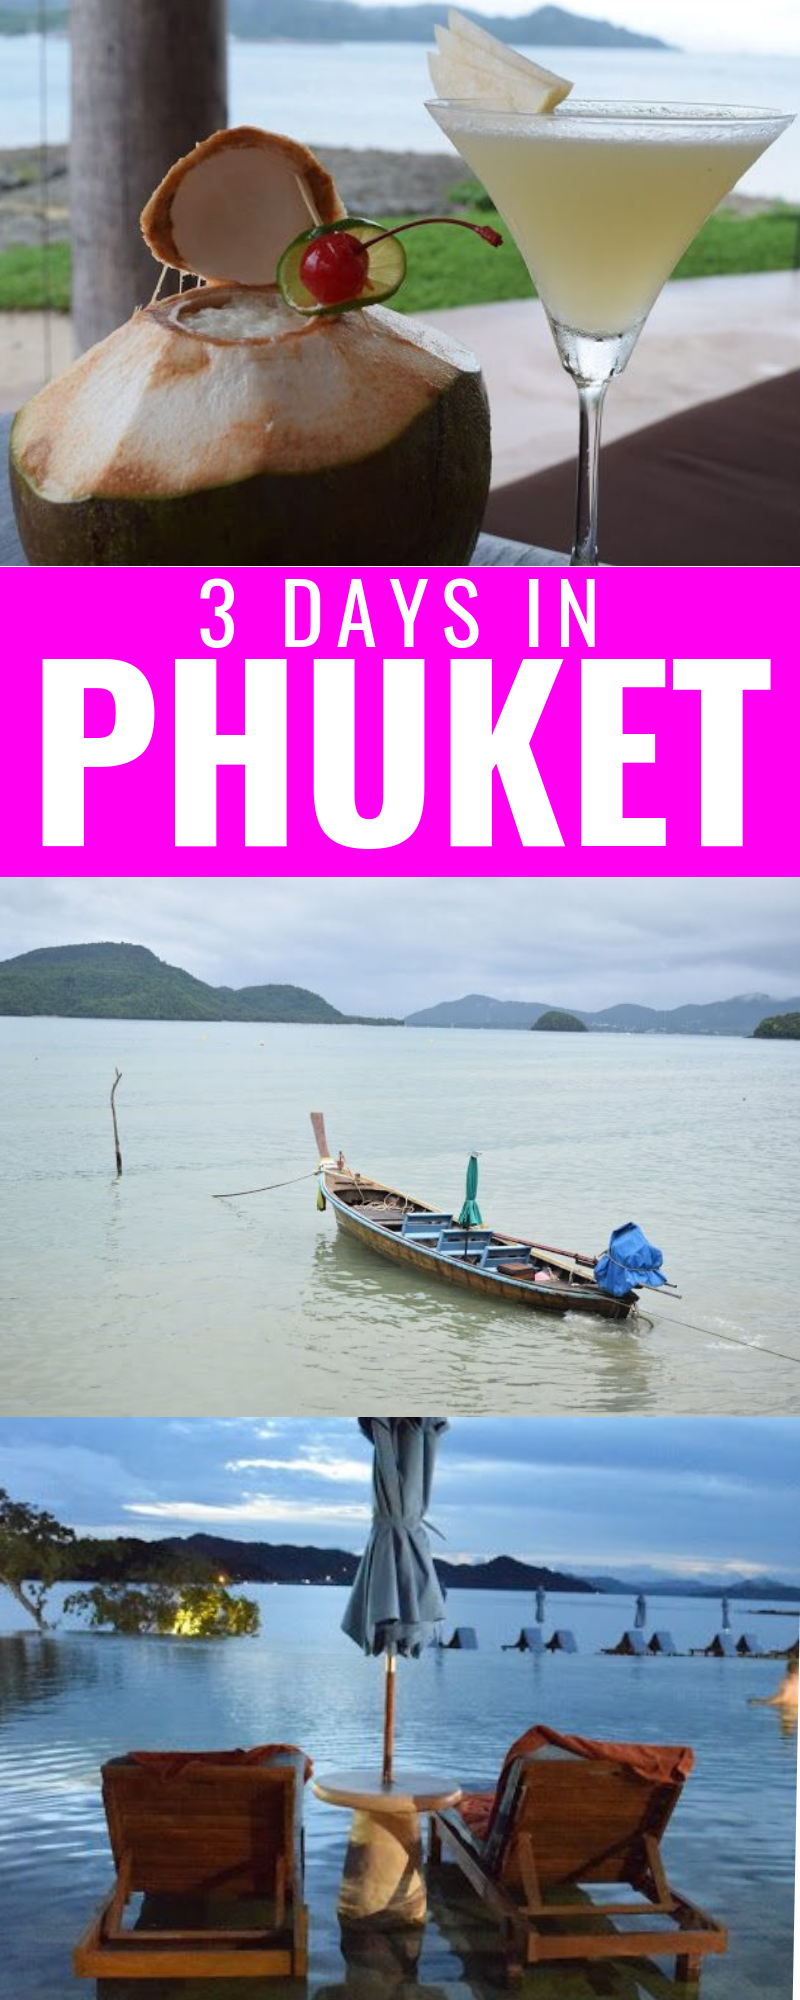 Traveling In & Around Phuket Thailand - Phuket Thailand - Weather In Phuket - Thailand Itinerary - Traveling In Thailand During Rainy Season - Places To Stay In Phuket - Naka Island Luxury Resort Thailand - How Much Does It Cost Thailand - Thailand Travel - Planning a trip to Thailand